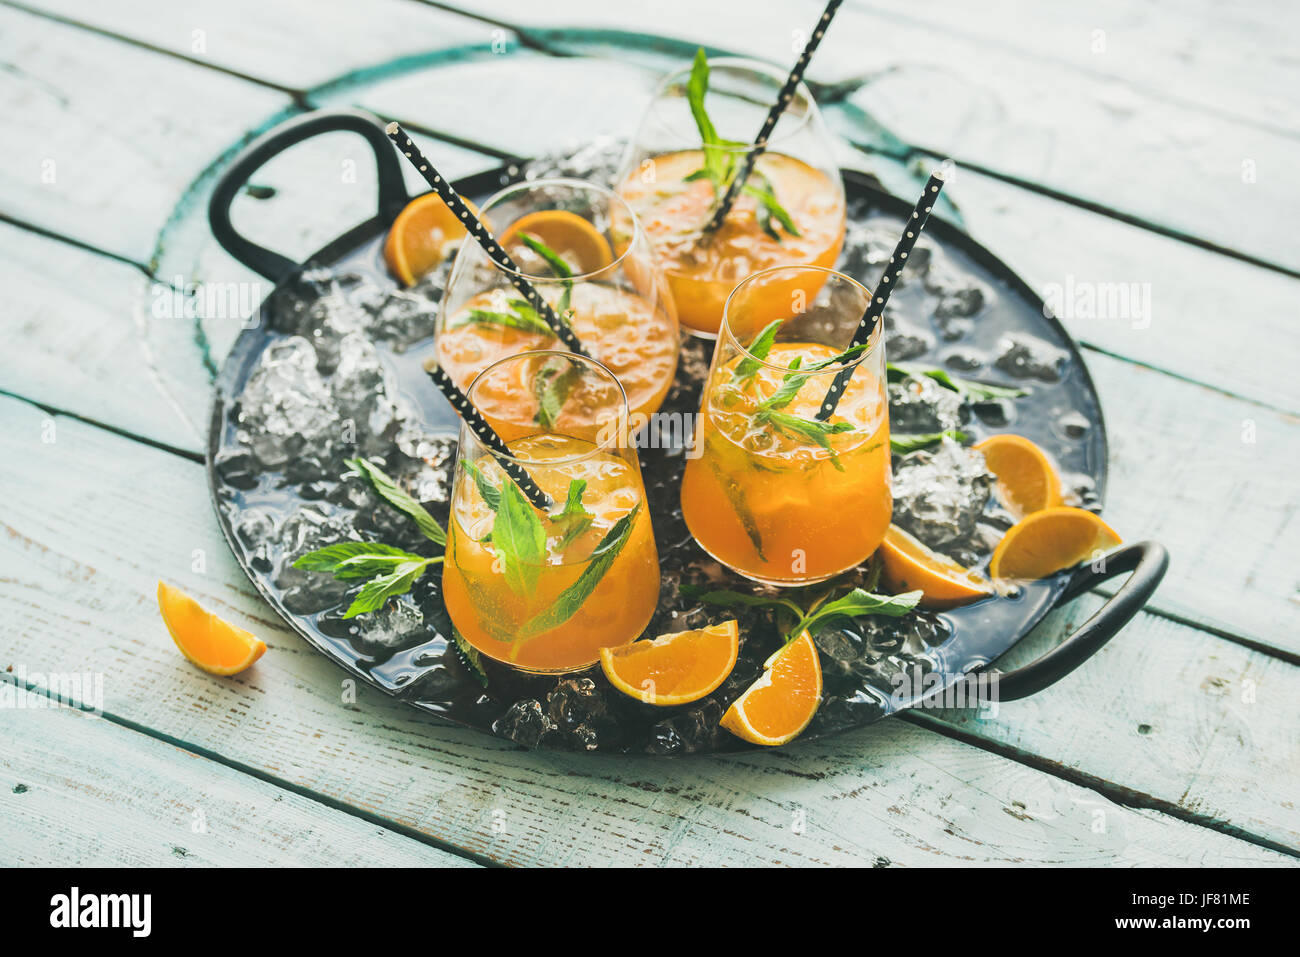 Refreshing alcoholic summer cocktail in glasses on tray - Stock Image